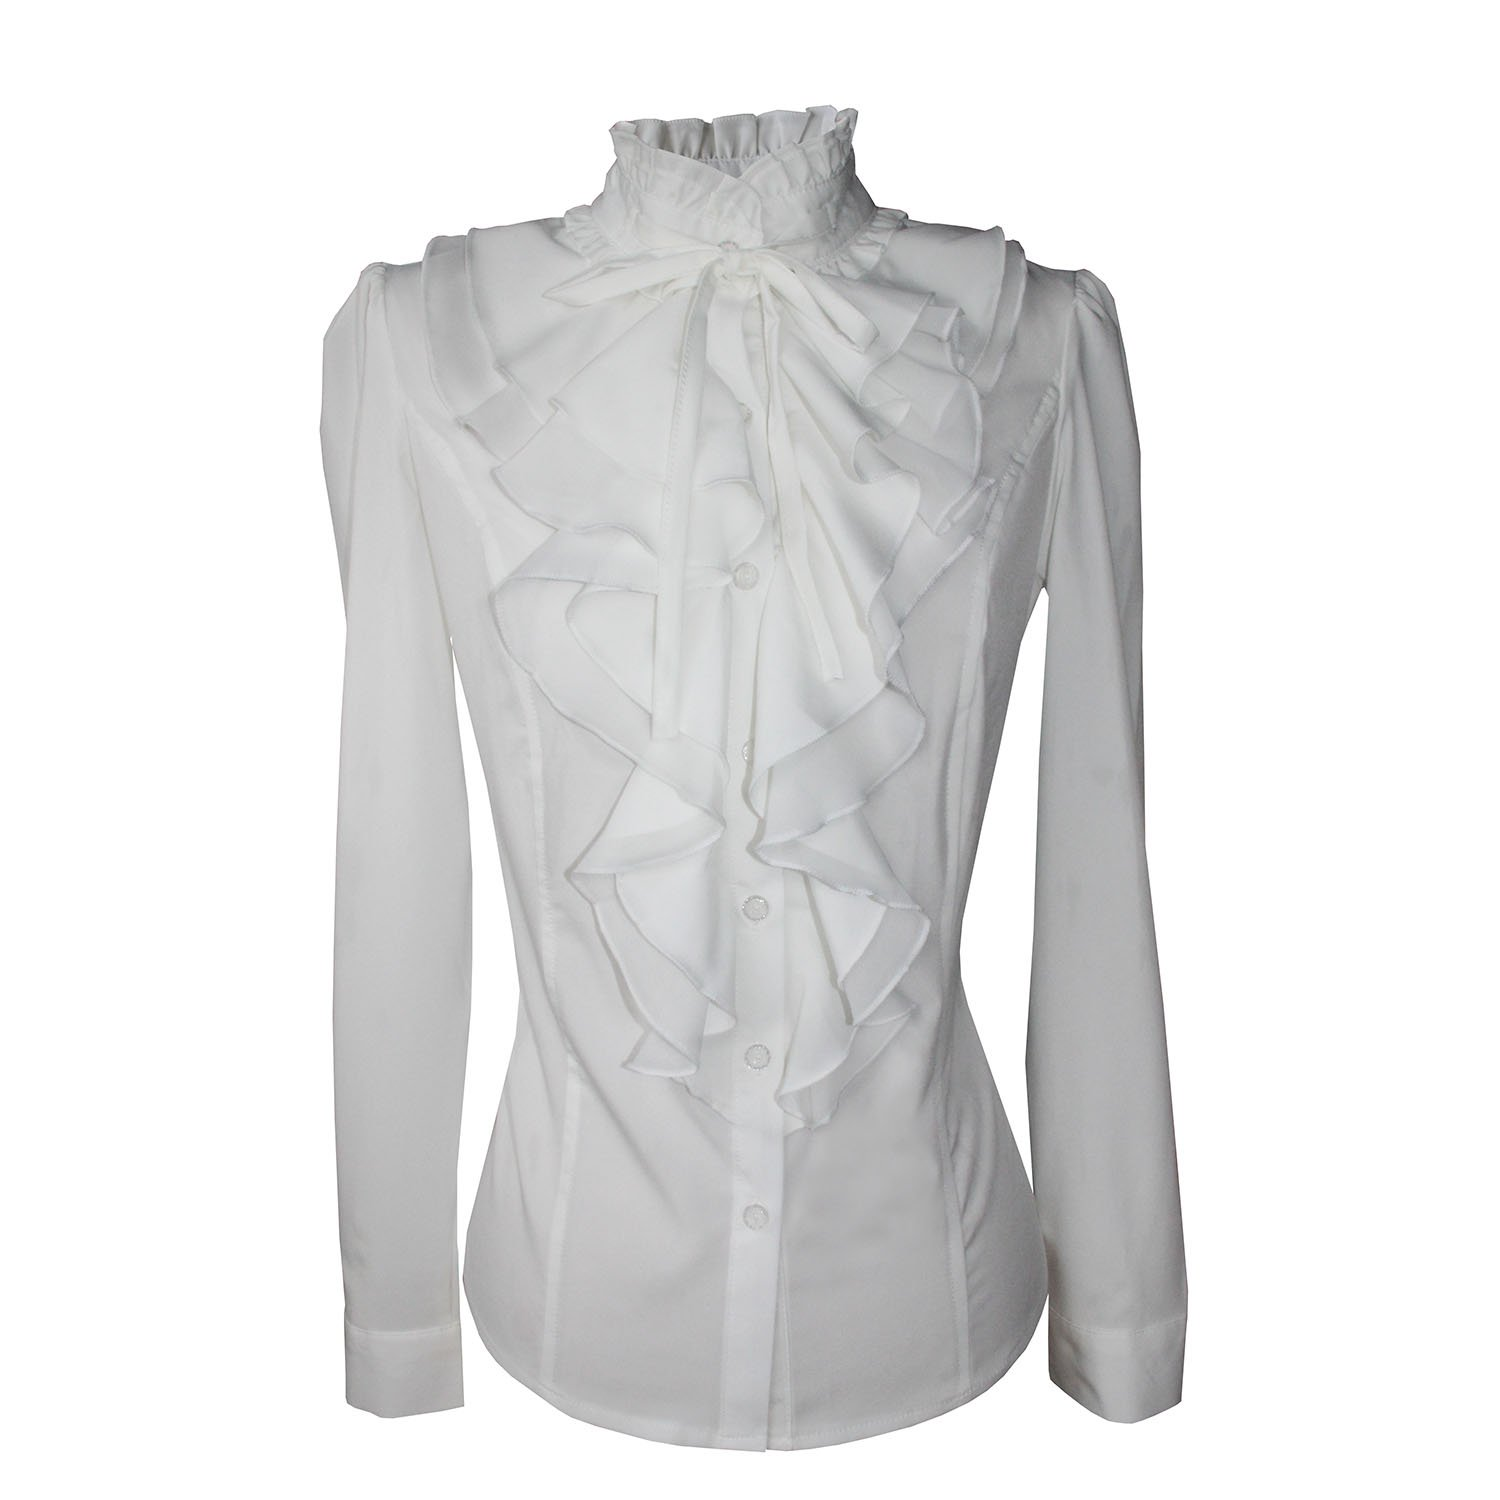 Edwardian Blouses | White & Black Lace Blouses & Sweaters Y&Z Shirts for Women Stand-up Collar Vintage Victoria Ruffle BS02 $18.99 AT vintagedancer.com